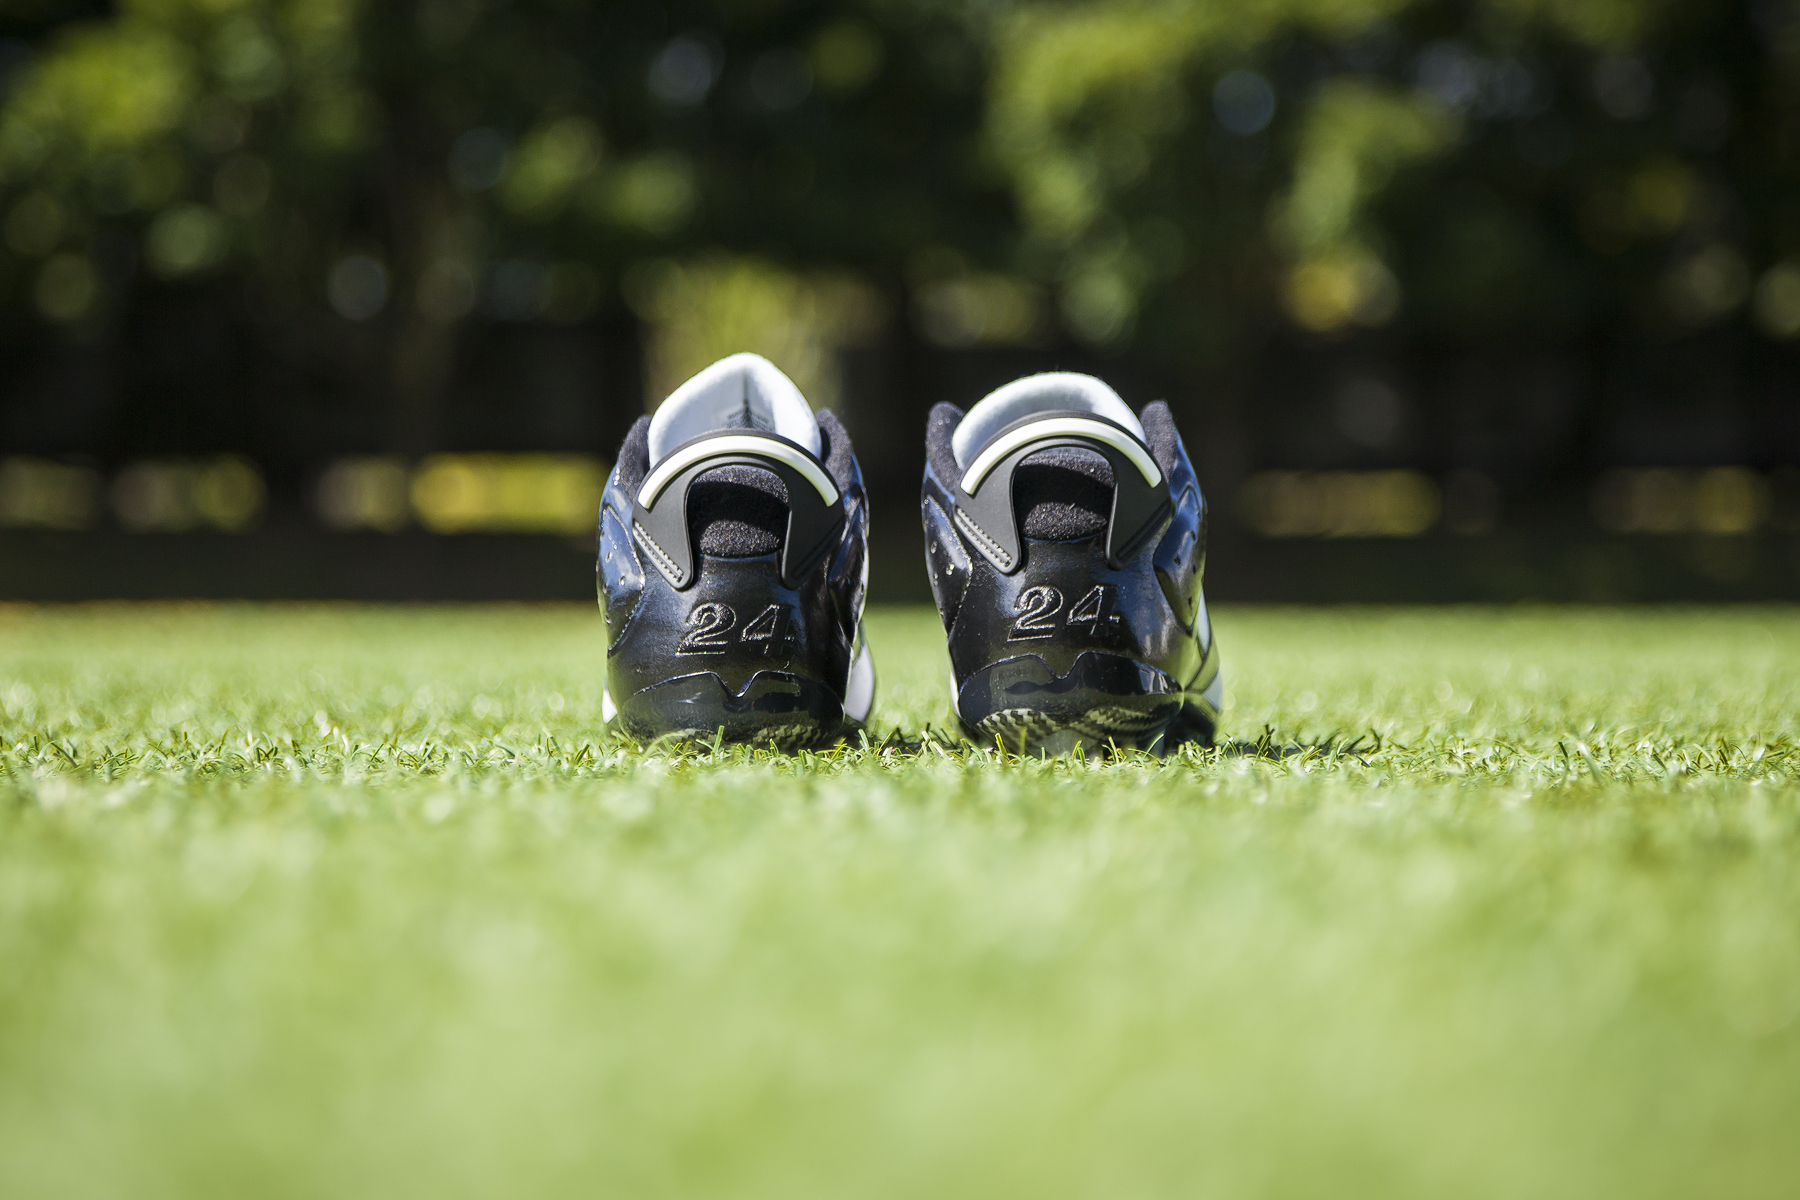 Jordan brand football athletes don air jordan vi cleats to start the lo hi biocorpaavc Gallery